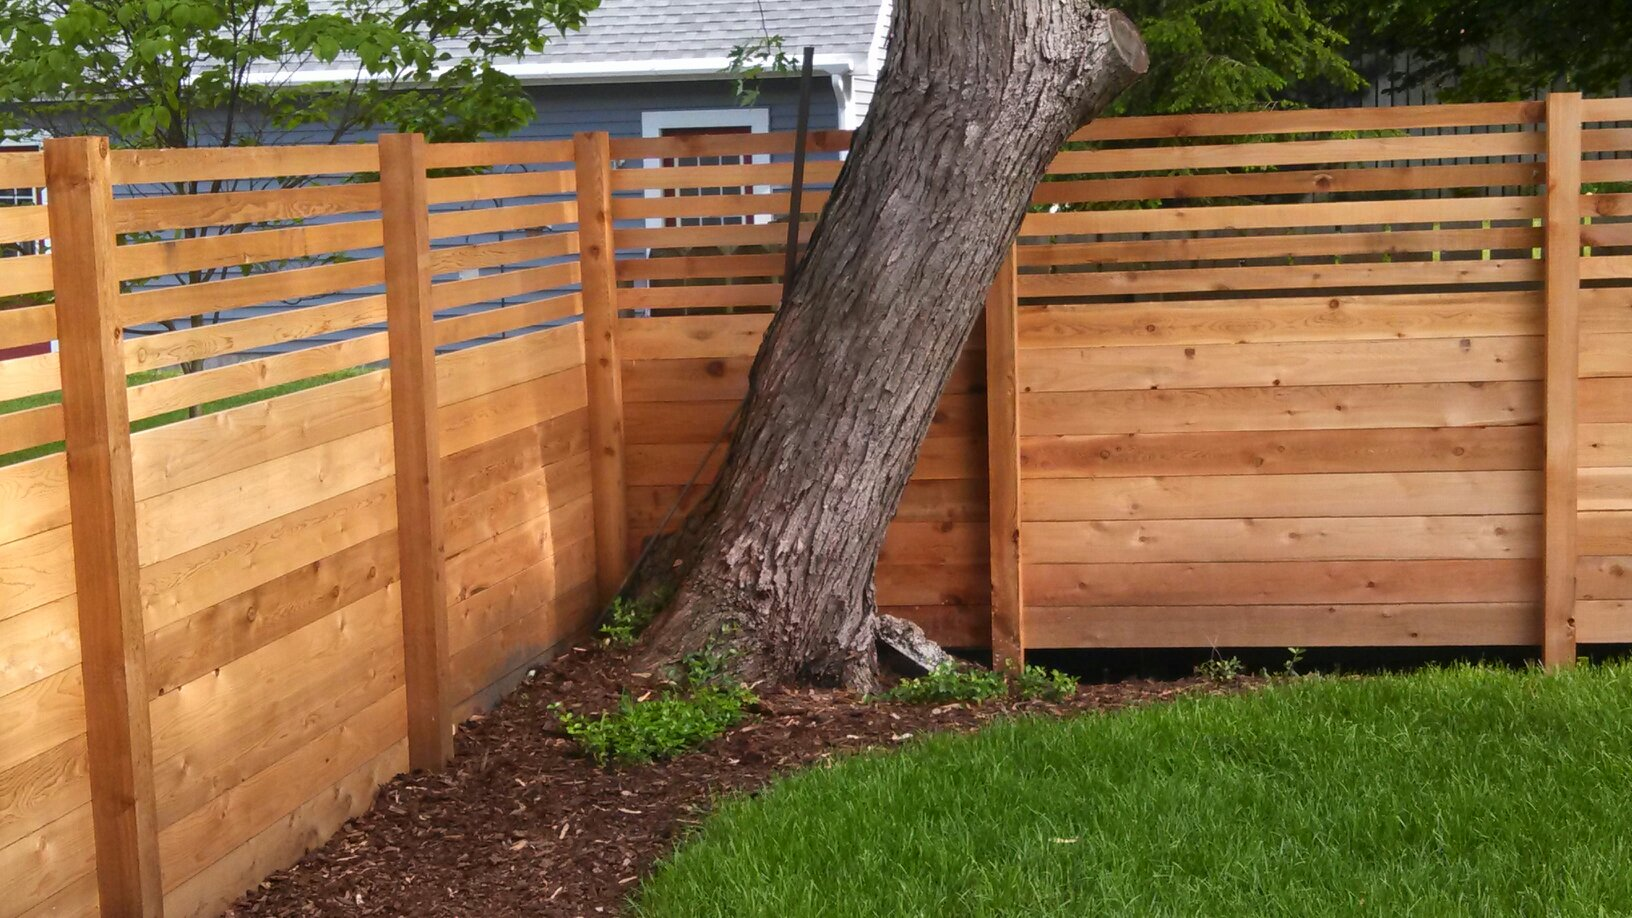 Spring Check Up: Fence Cleaning and Repair  Straight Line Fence